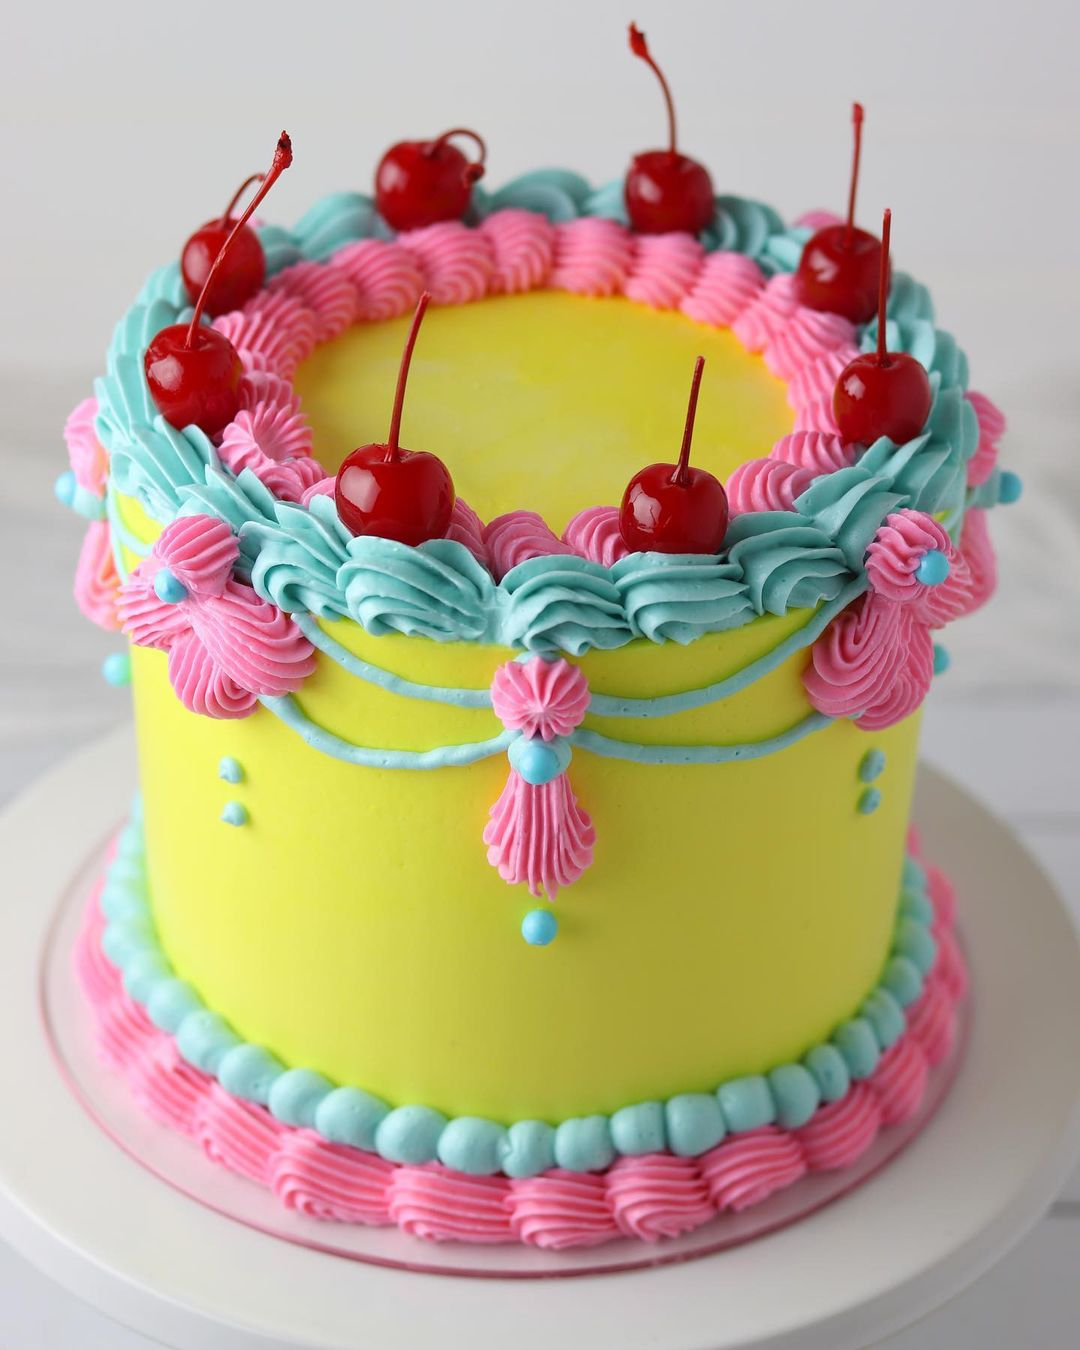 vintage piped cakes, All about vintage piped cakes (cake inspiration)